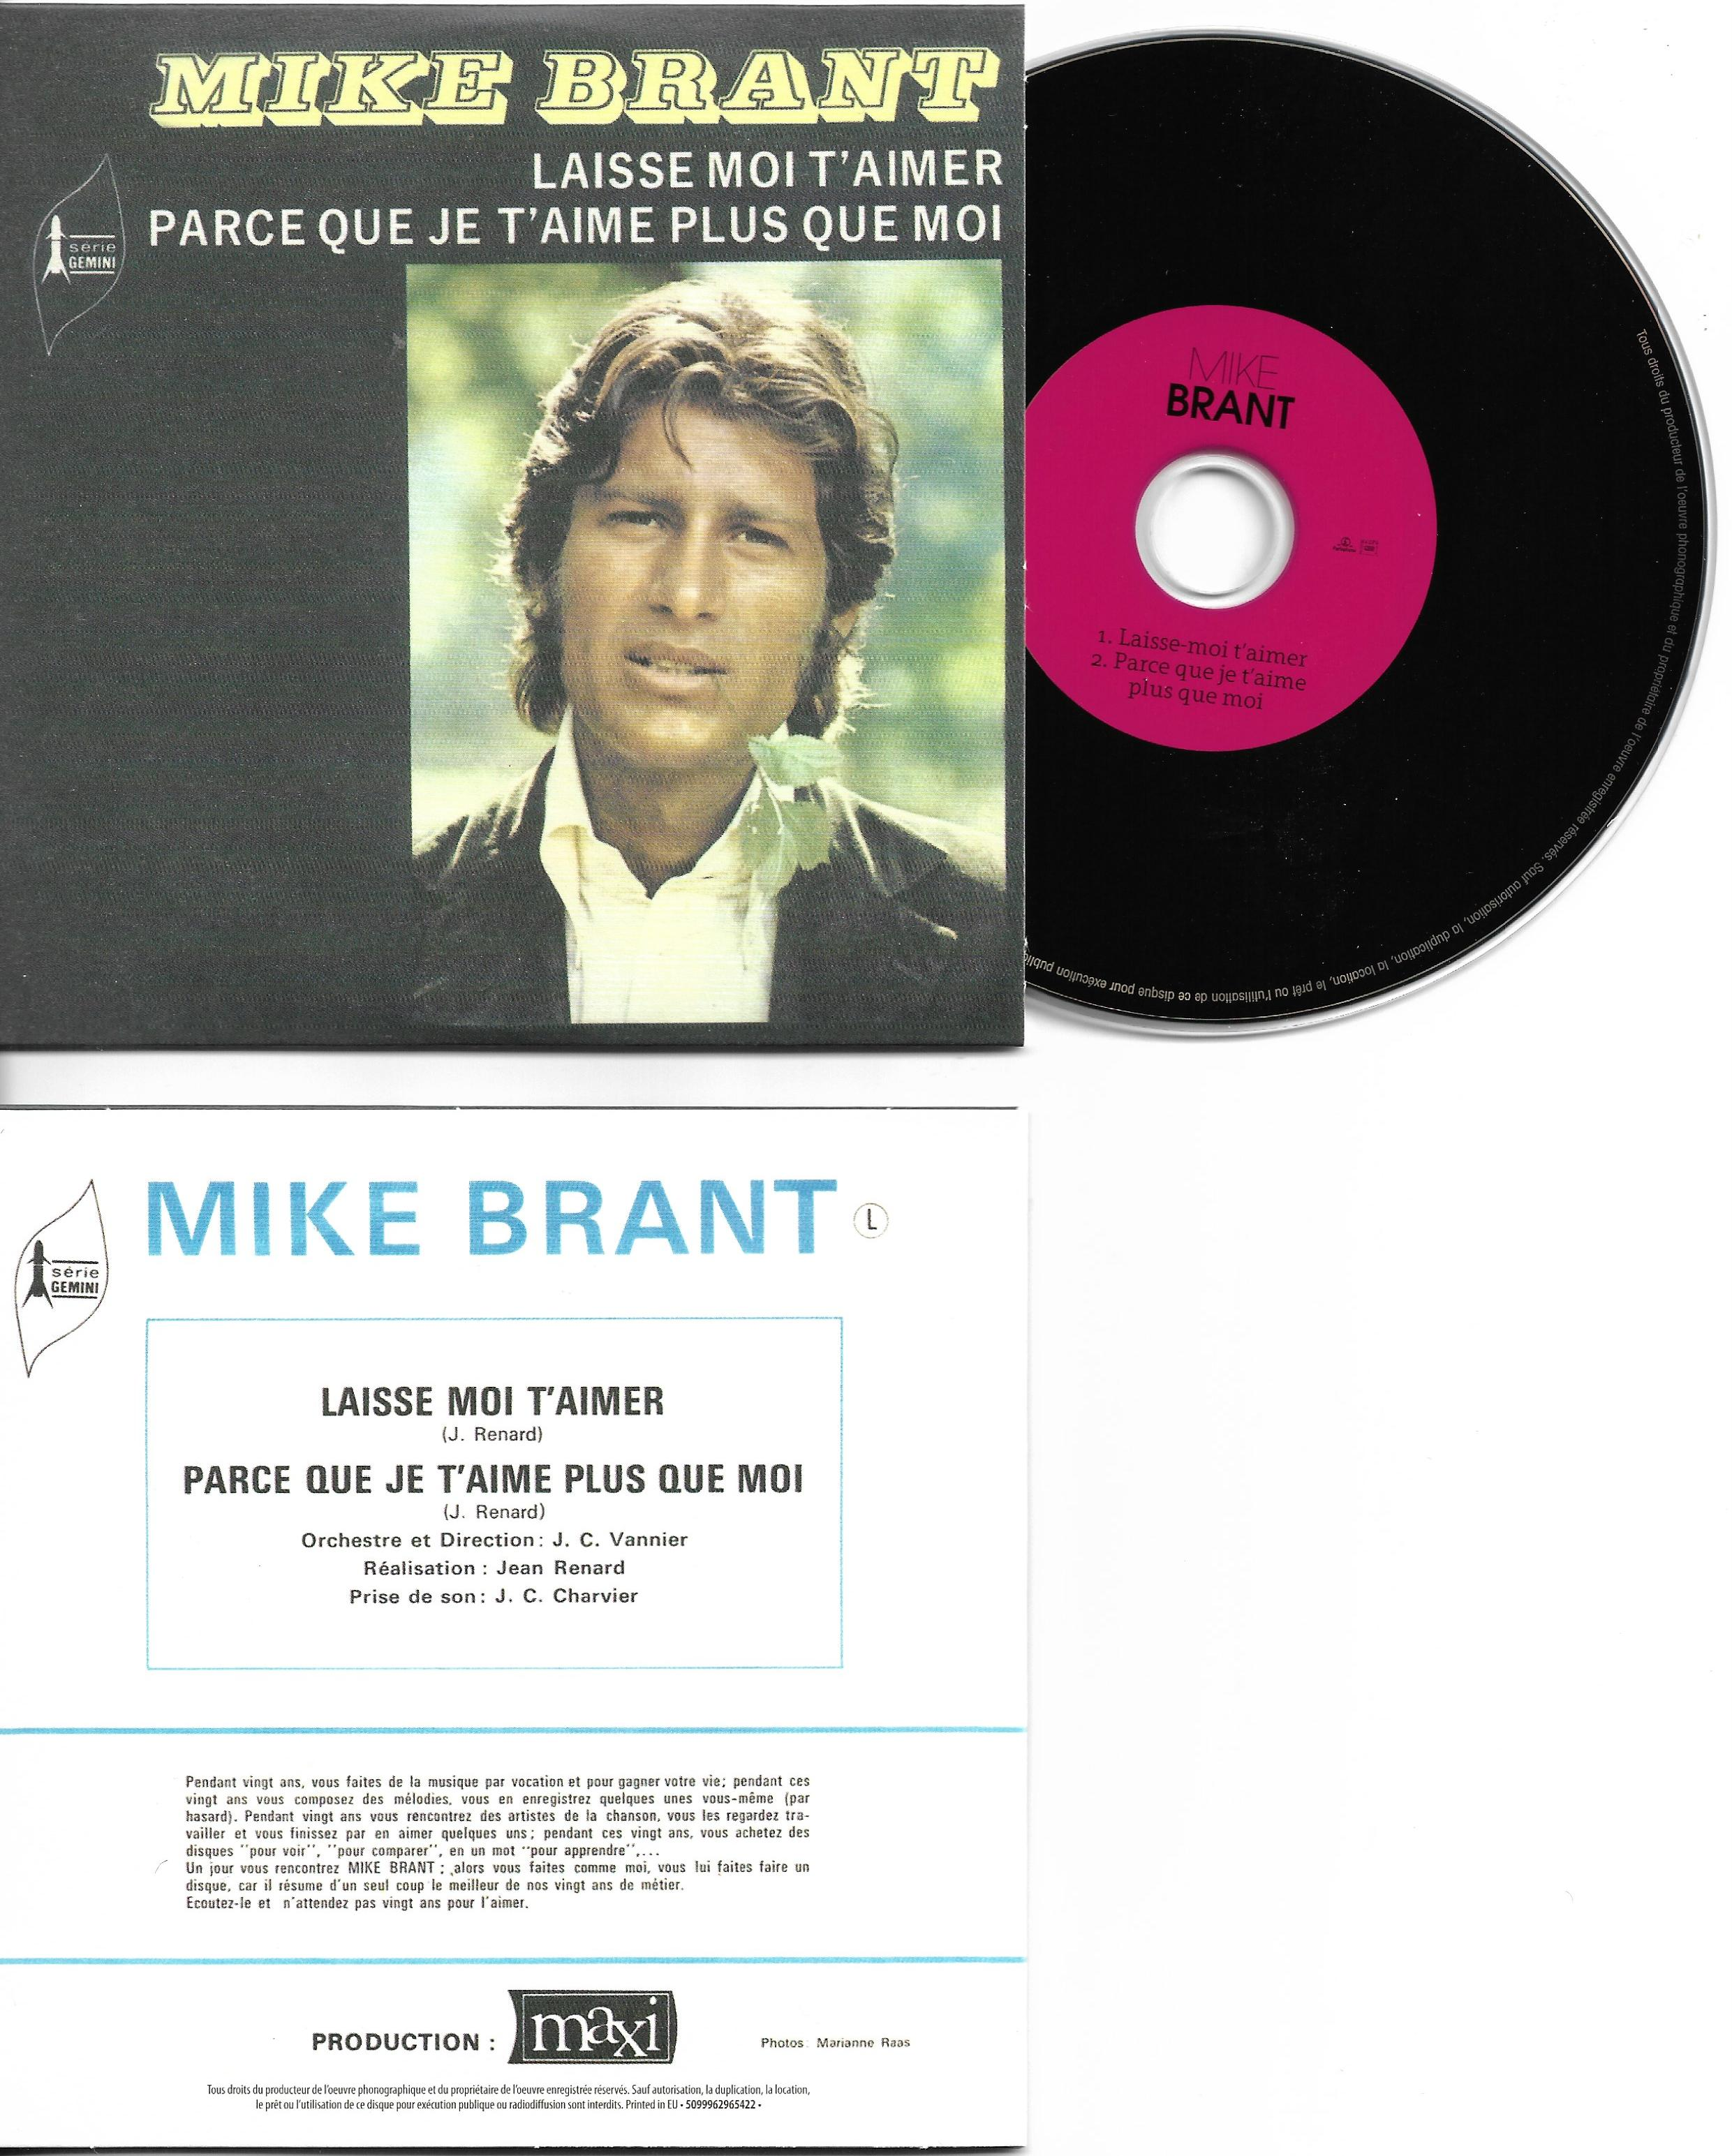 MIKE BRANT - Laisse moi t'aimer 2-TRACK CARD SLEEVE - CD single